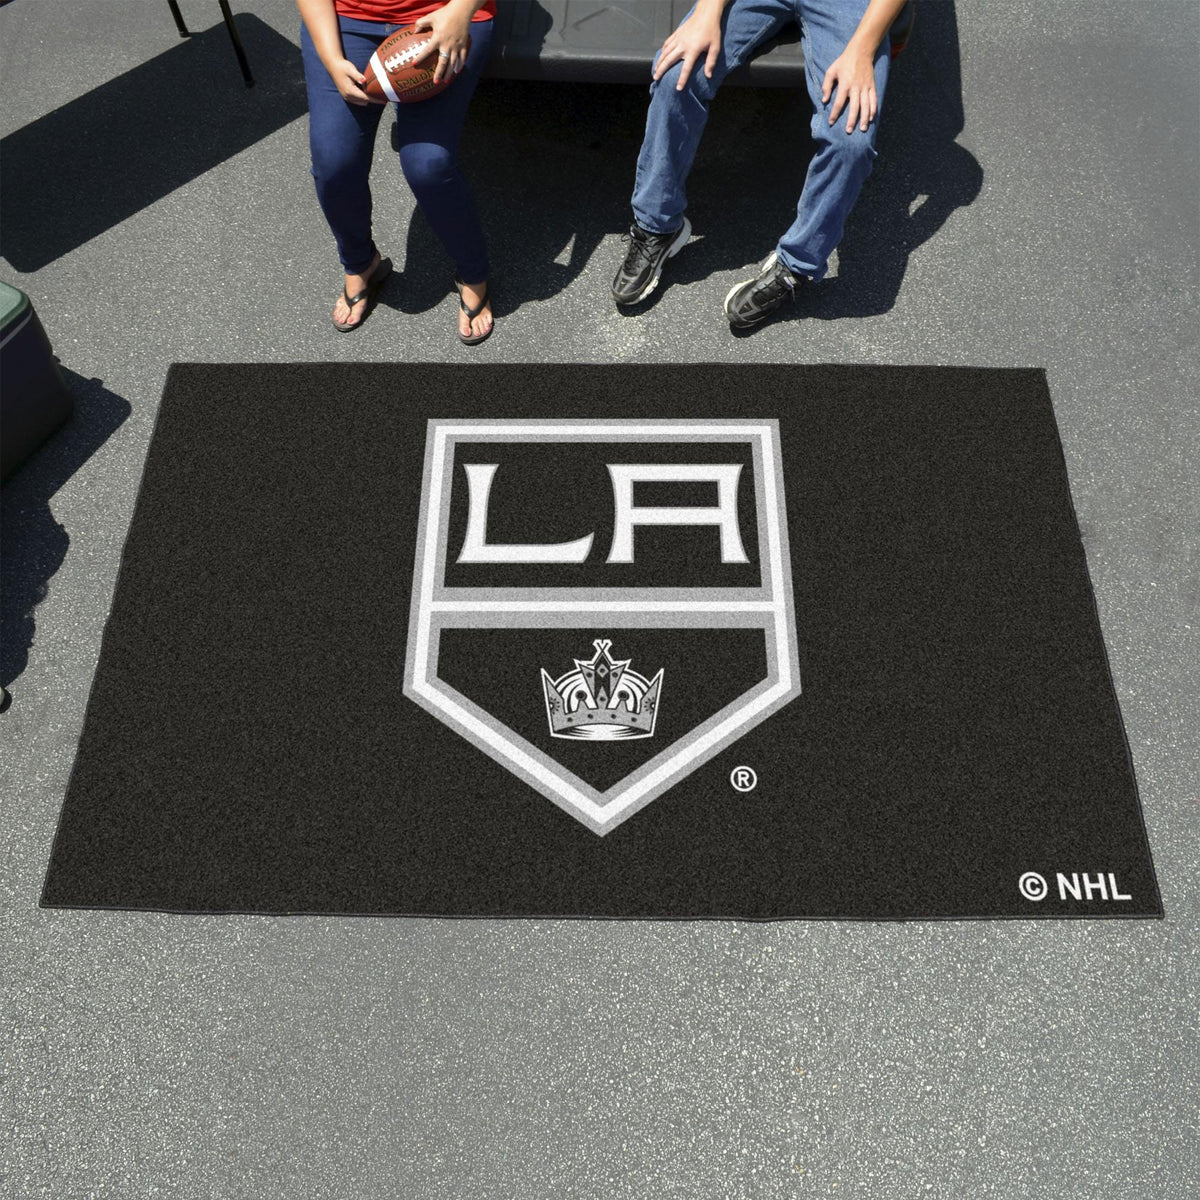 NHL - Ulti-Mat NHL Mats, Rectangular Mats, Ulti-Mat, NHL, Home Fan Mats Los Angeles Kings